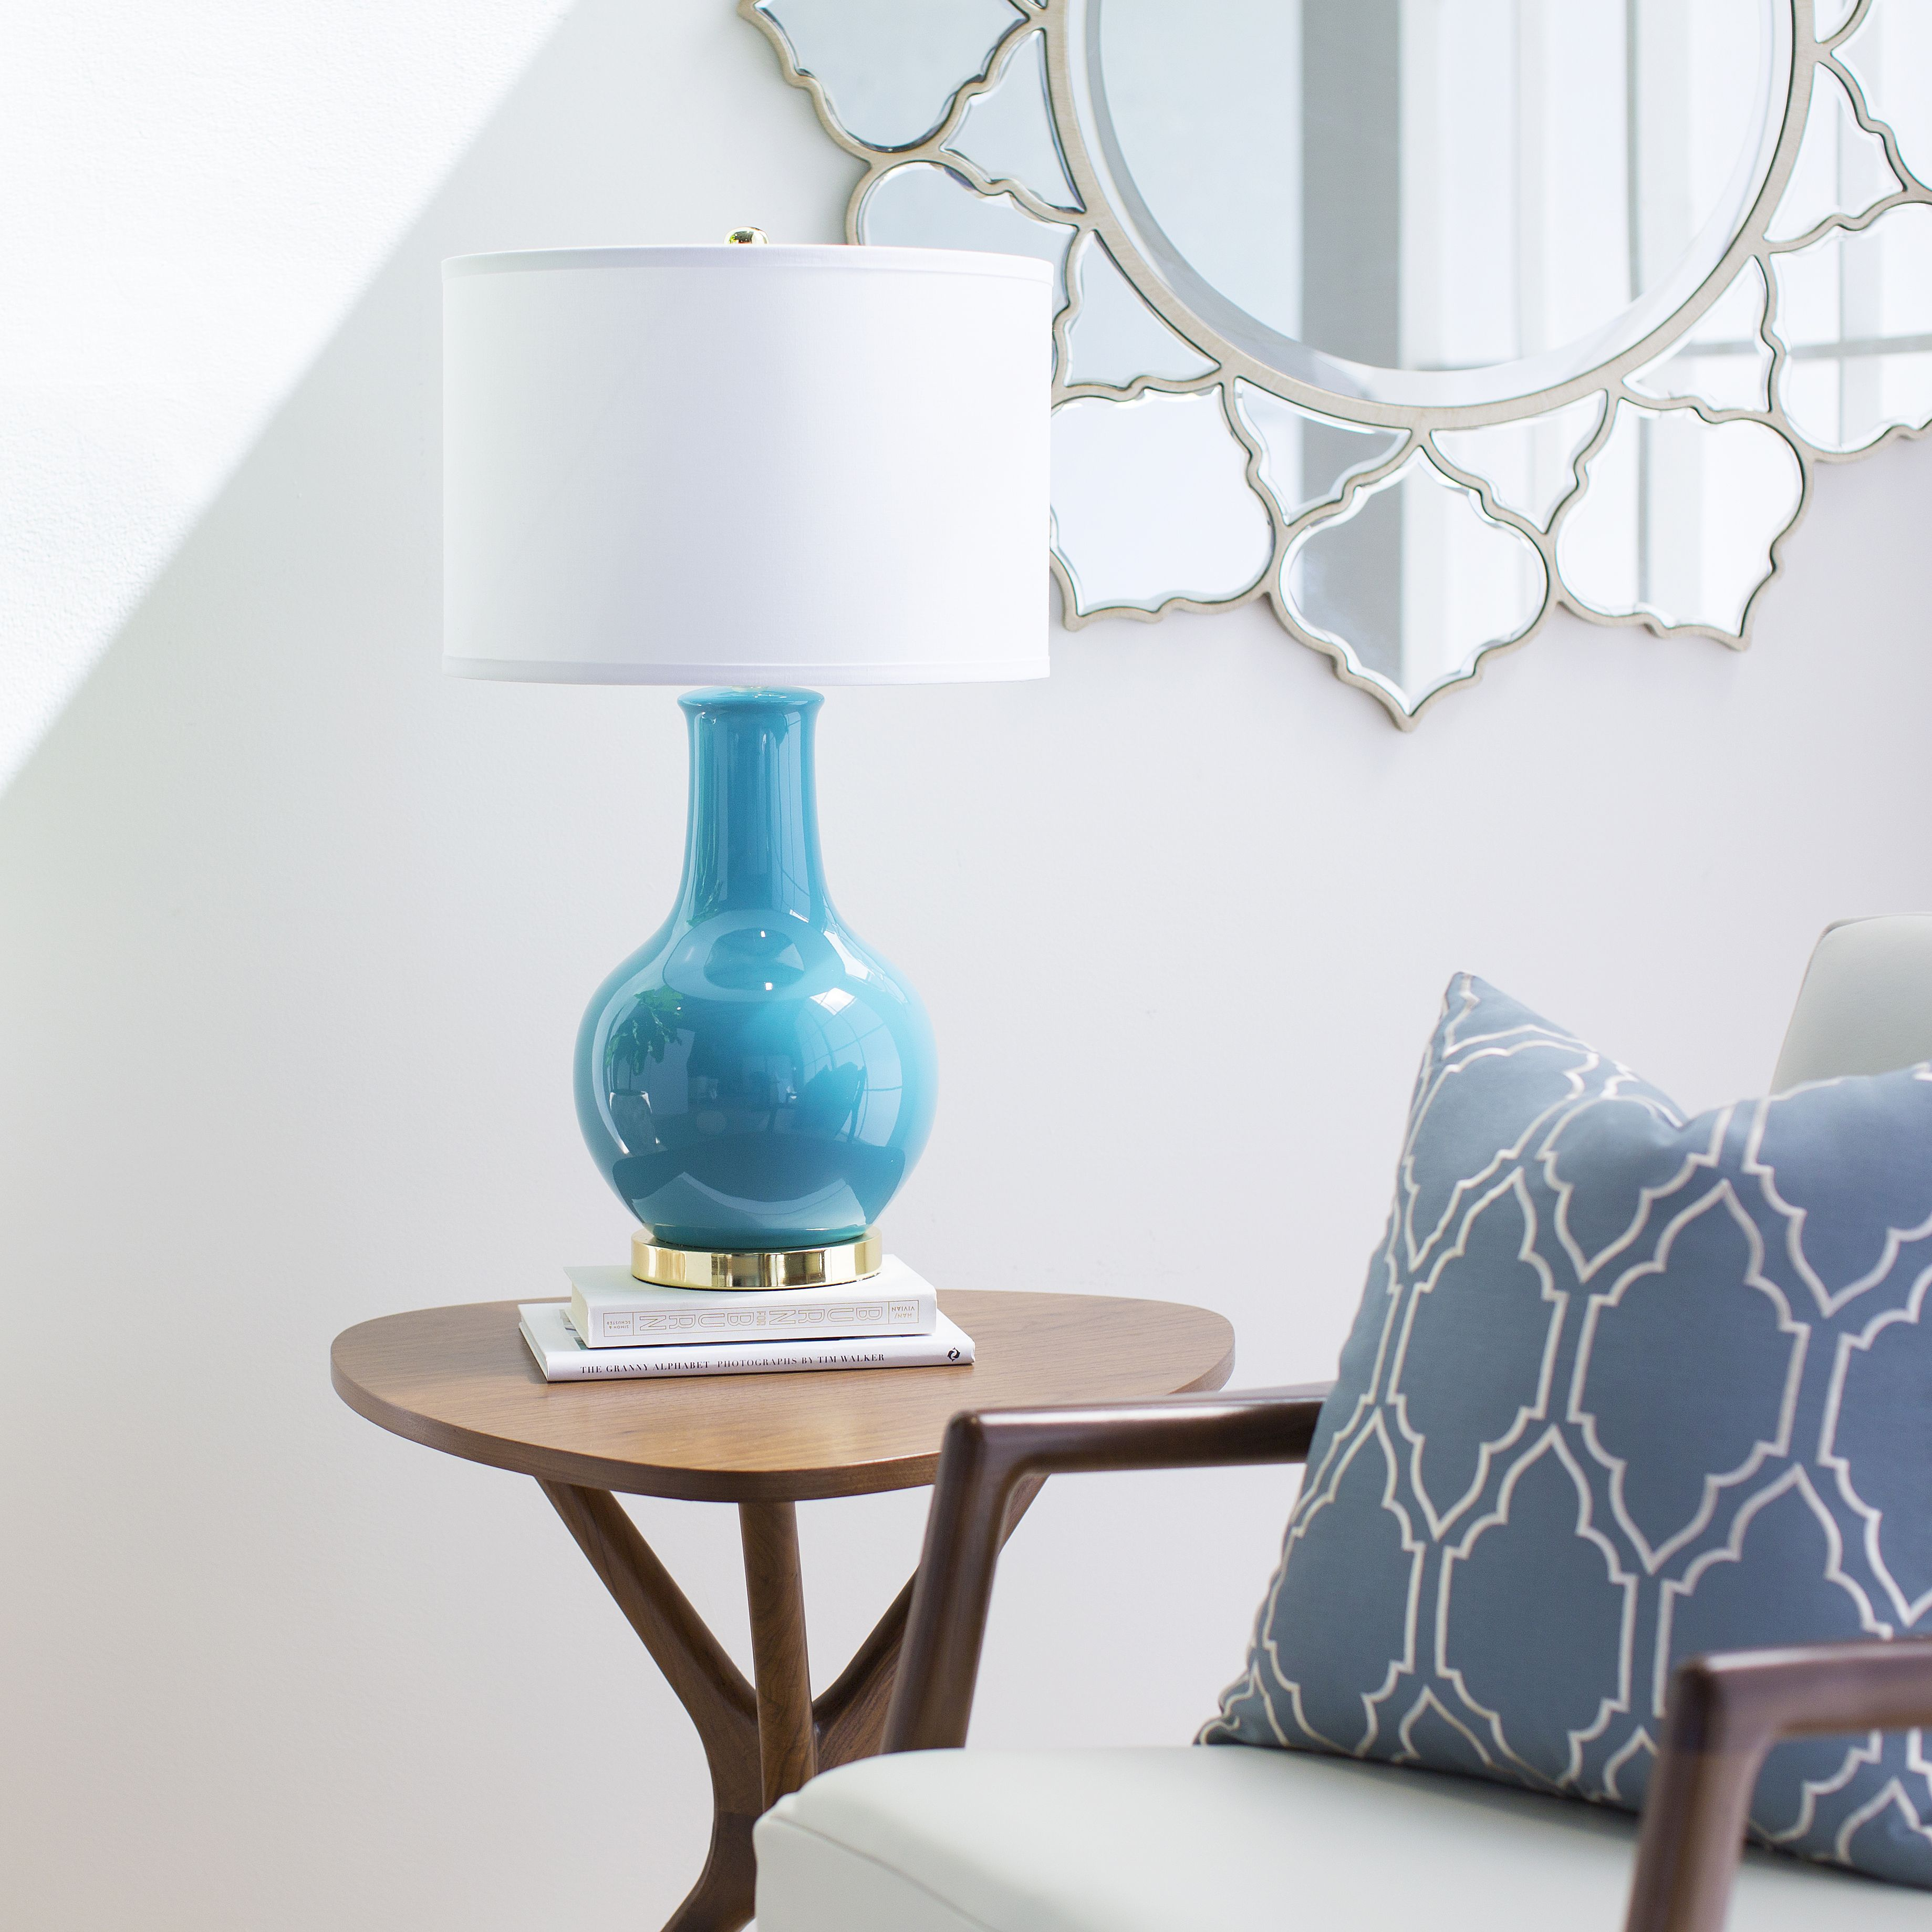 proper lighting. Proper Lighting Never Goes Out Of Style! Lamp (SAY-203), Pillow